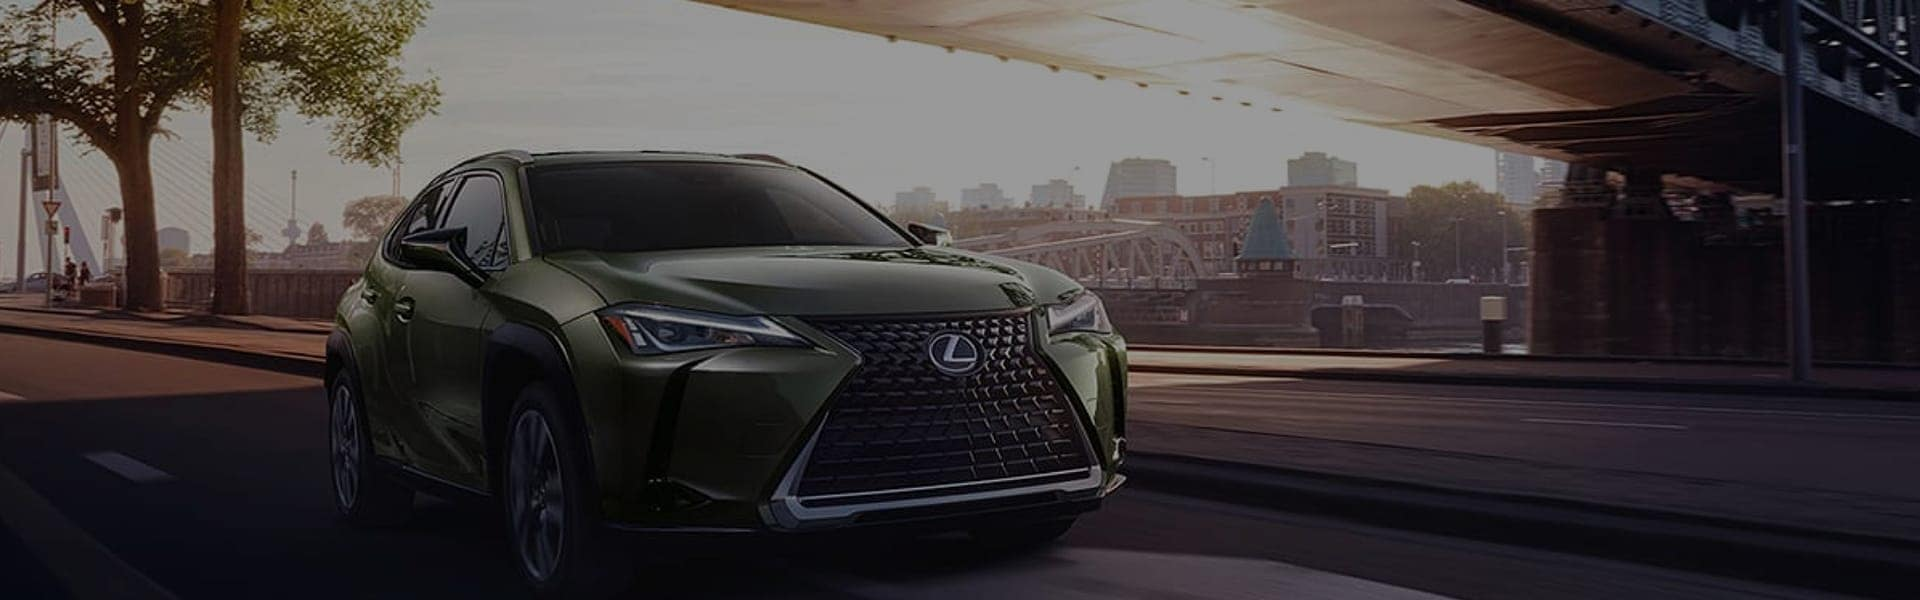 Lexus Dealers In Nj >> Lexus Of Atlantic City Lexus Dealer In Egg Harbor Township Nj